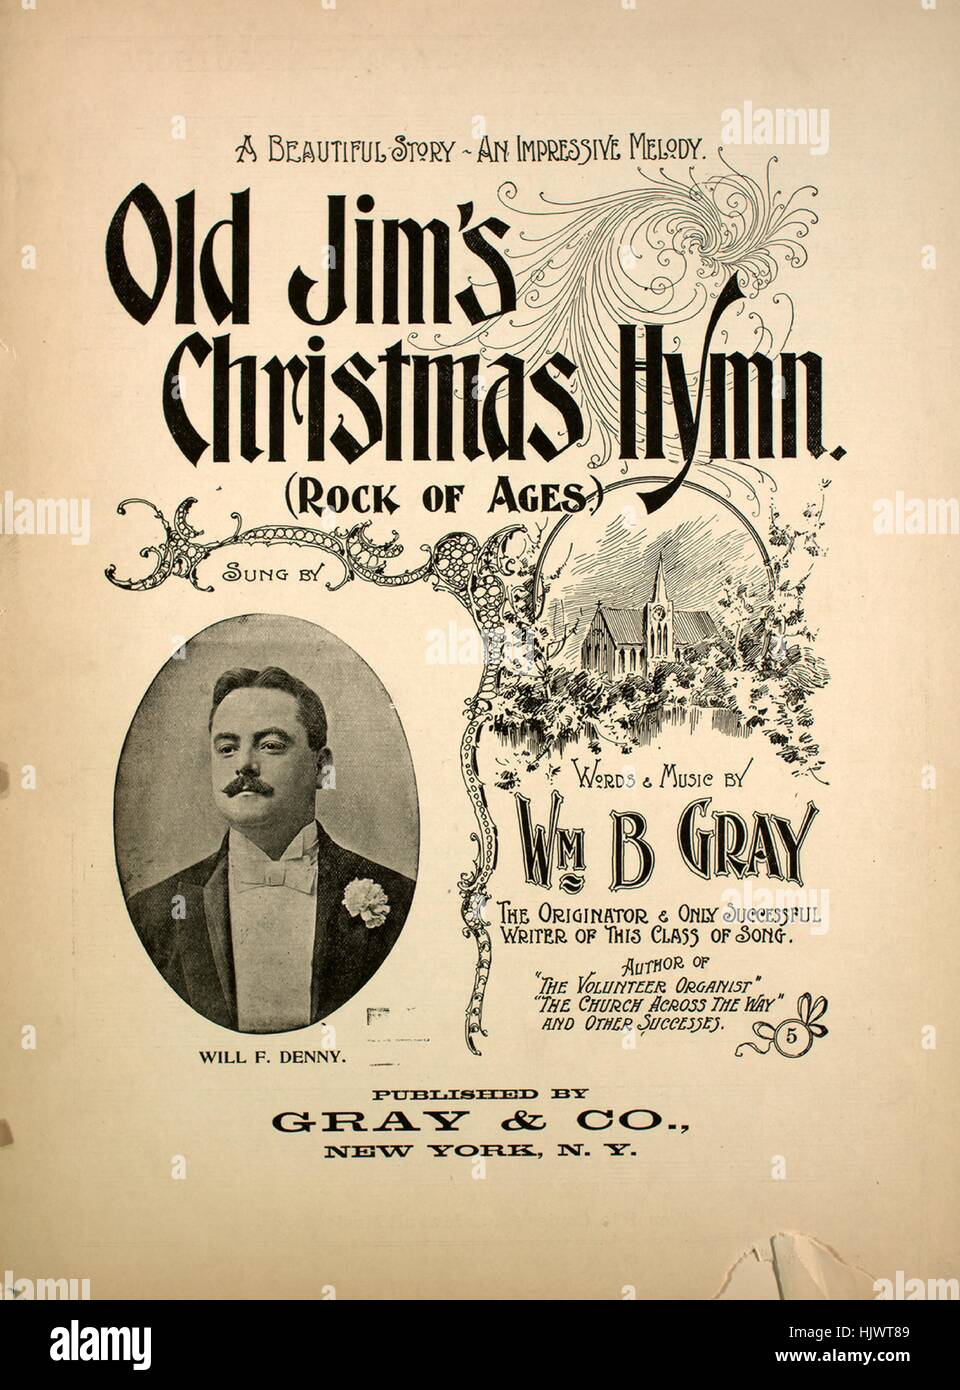 Rock Music Cover Sheet Music Cover Image Of The Song Old Jim S Christmas Hymn Rock